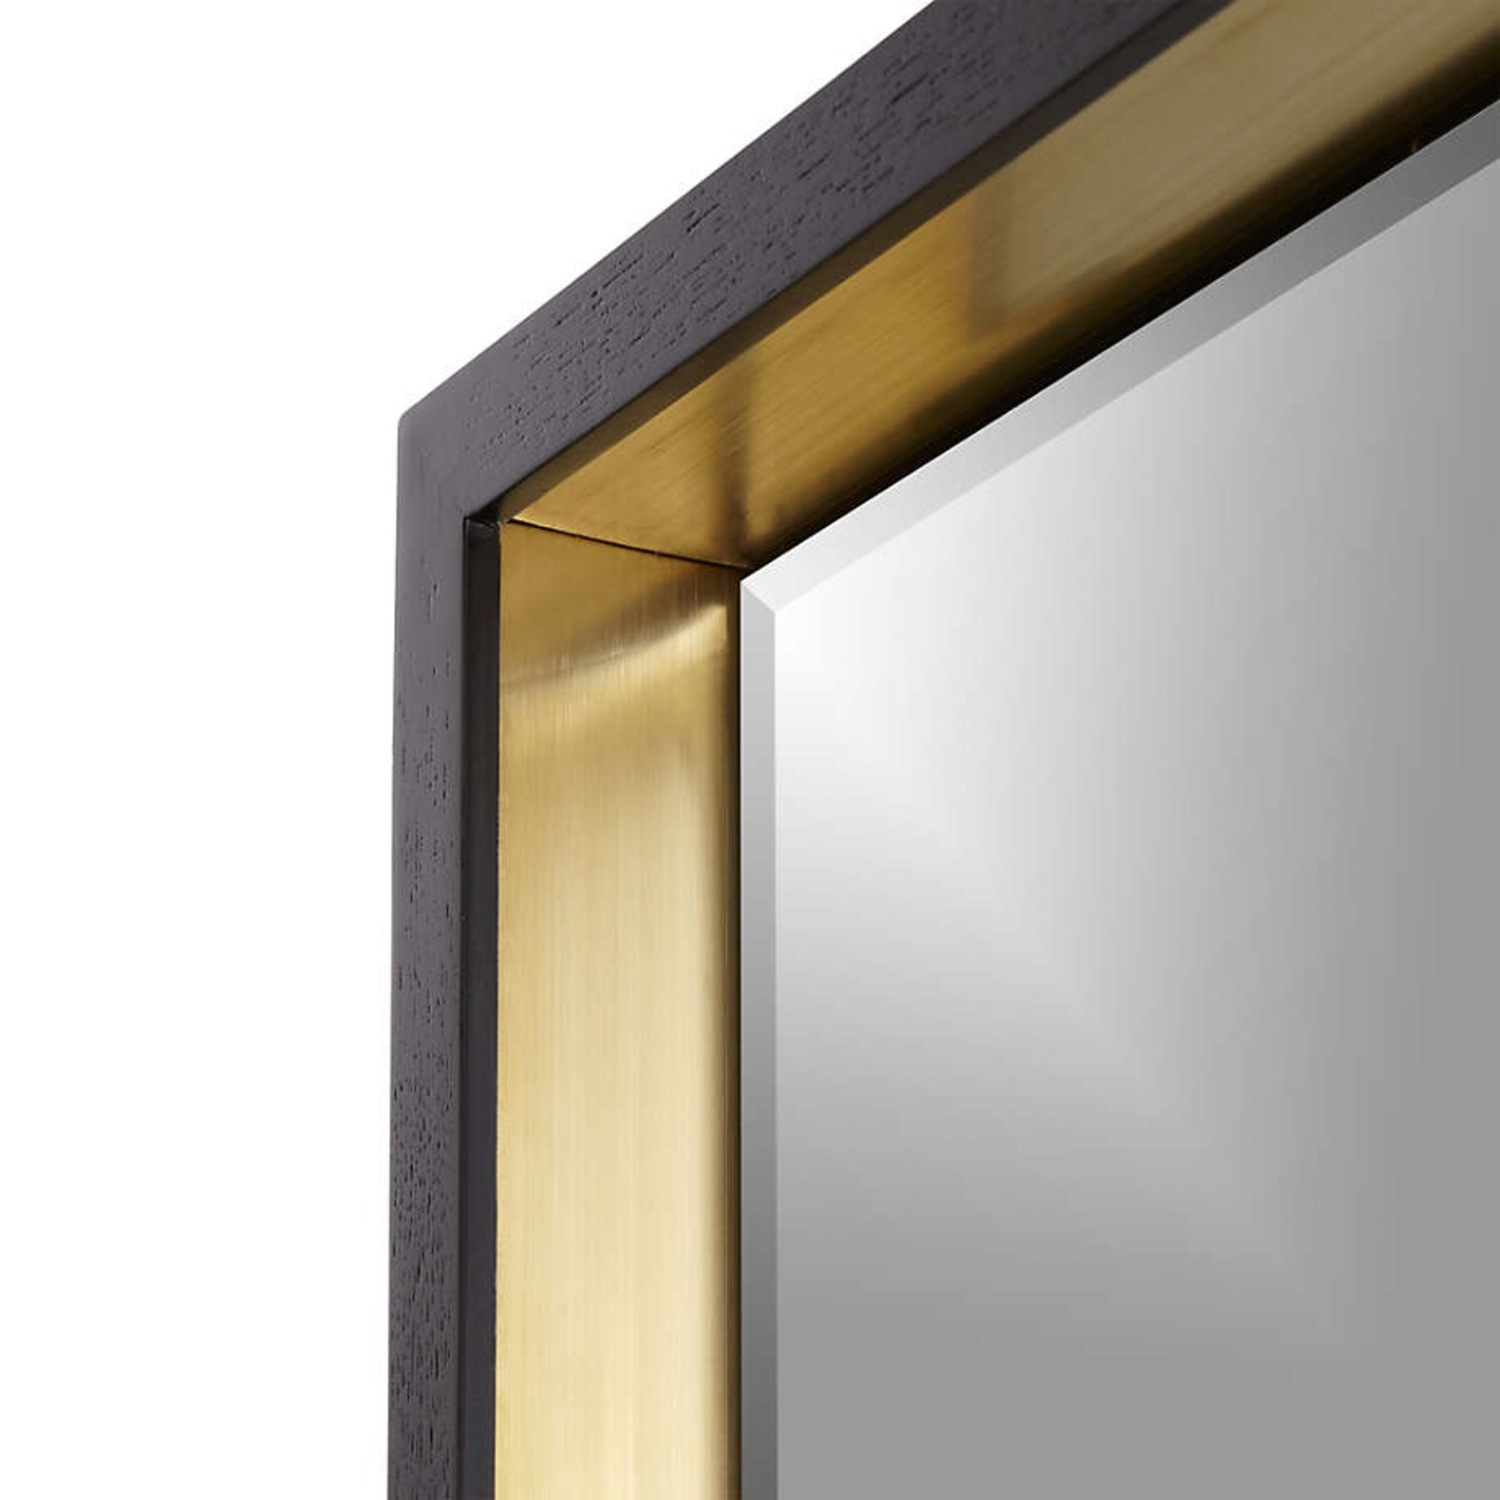 Crate & Barrel Liam Frame Floor Mirror with Brass Inlay - image-2